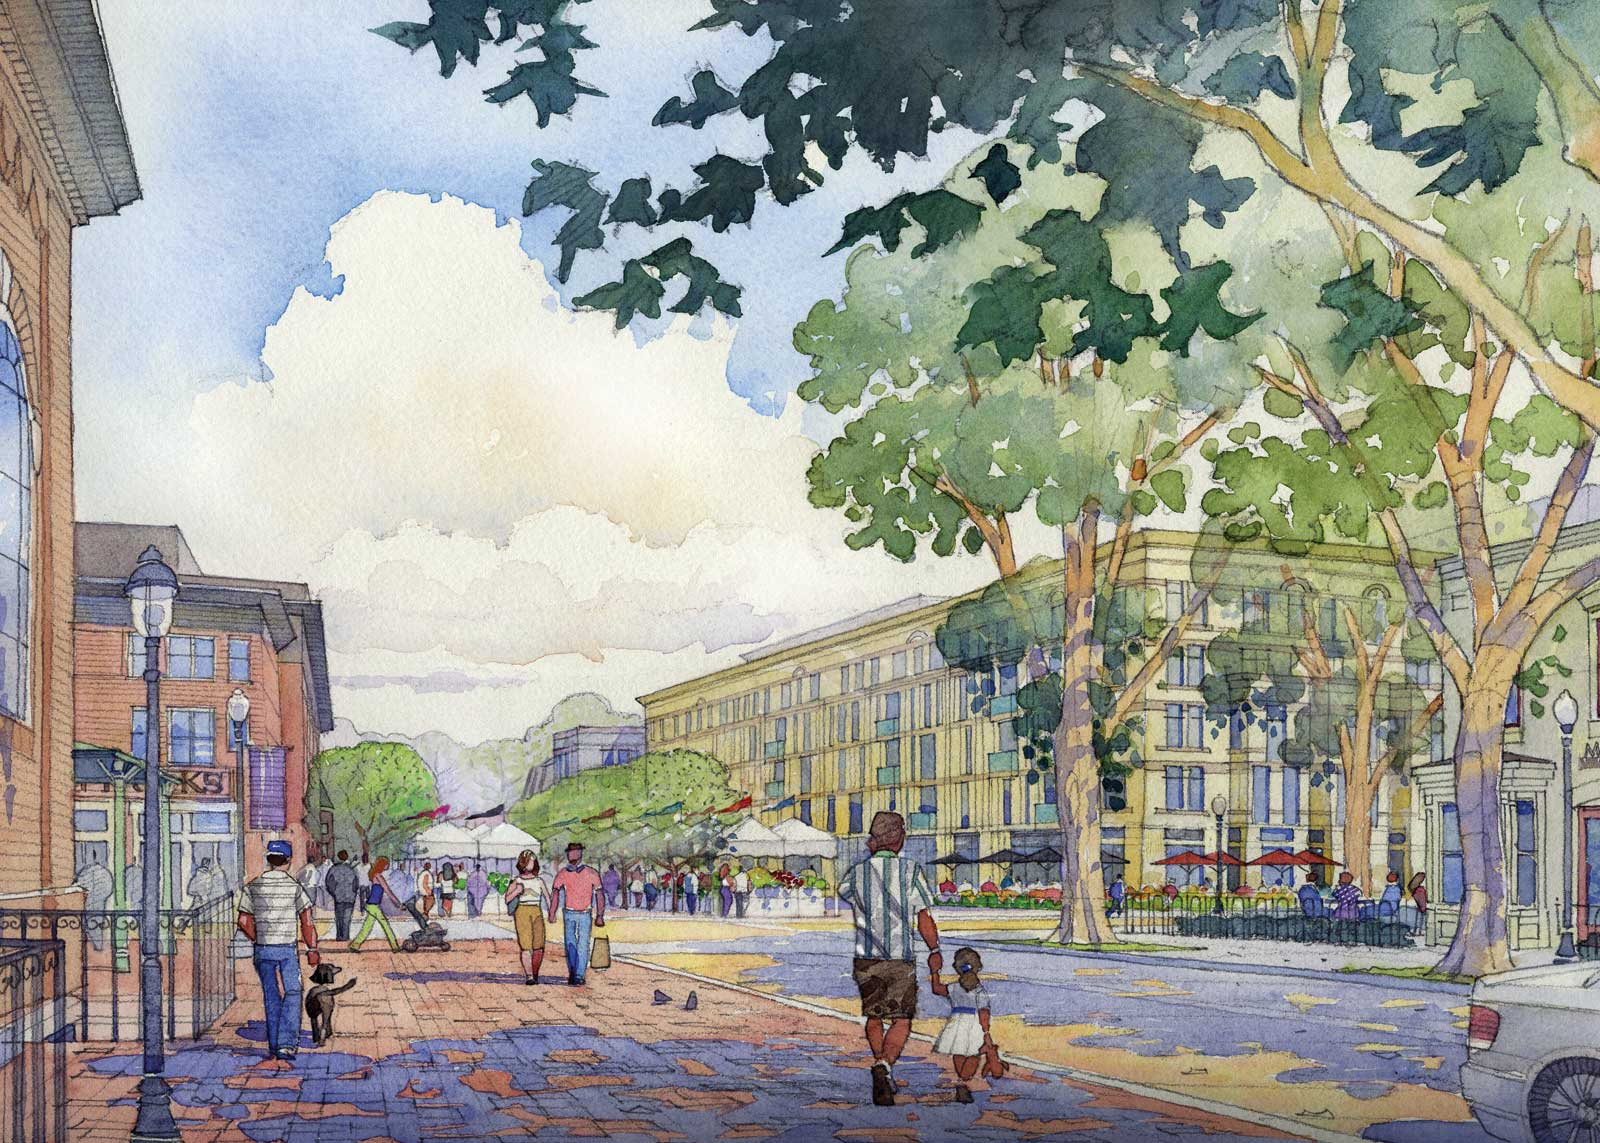 700 Penn Watercolor Rendering